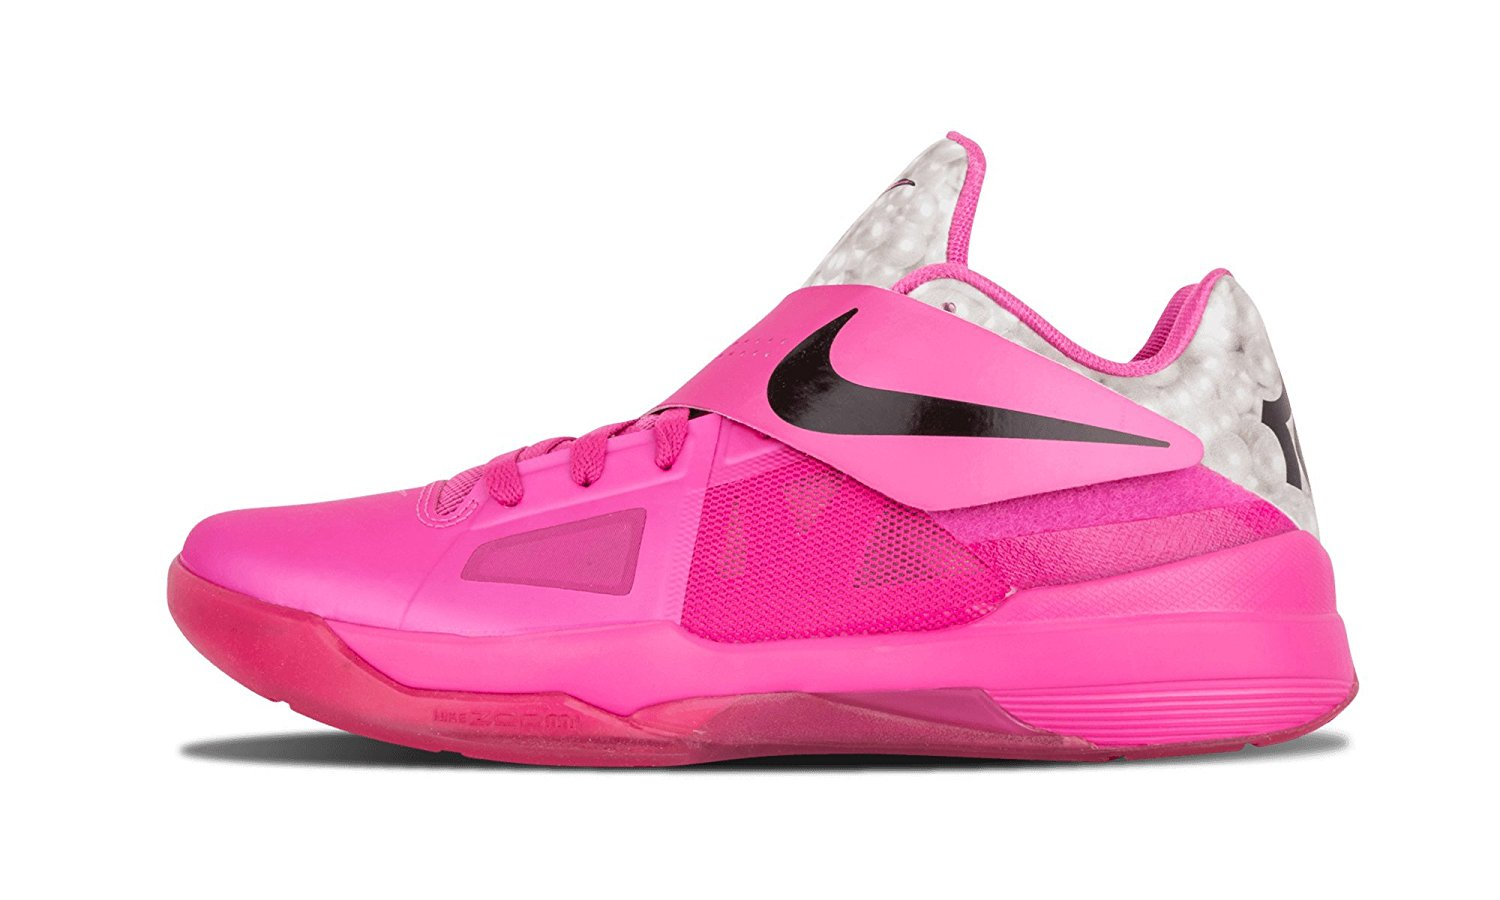 sports shoes 8c908 a22fc Get Quotations · Nike Zoom Kd Iv Pink Fire Metallic Silver (473679-601)